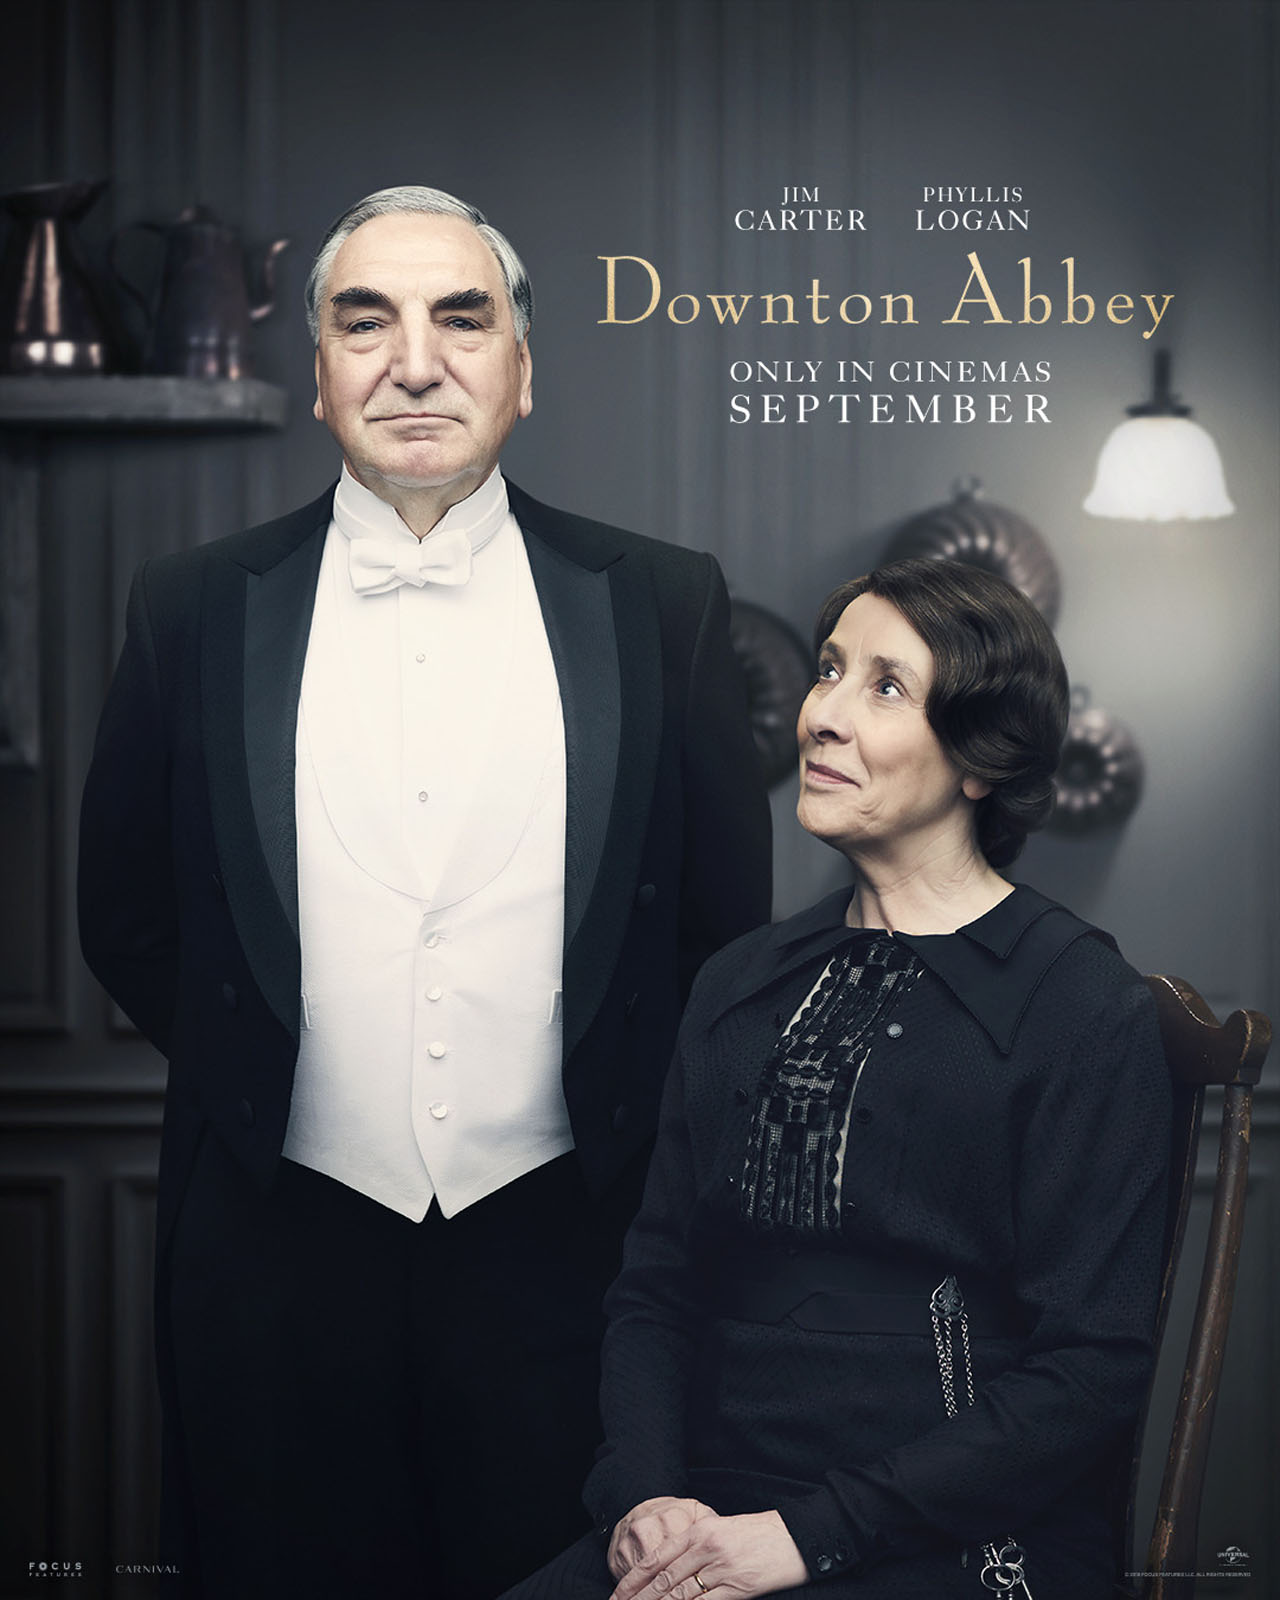 Downton Abbey The Movie Character Posters Mr and Mrs Carson